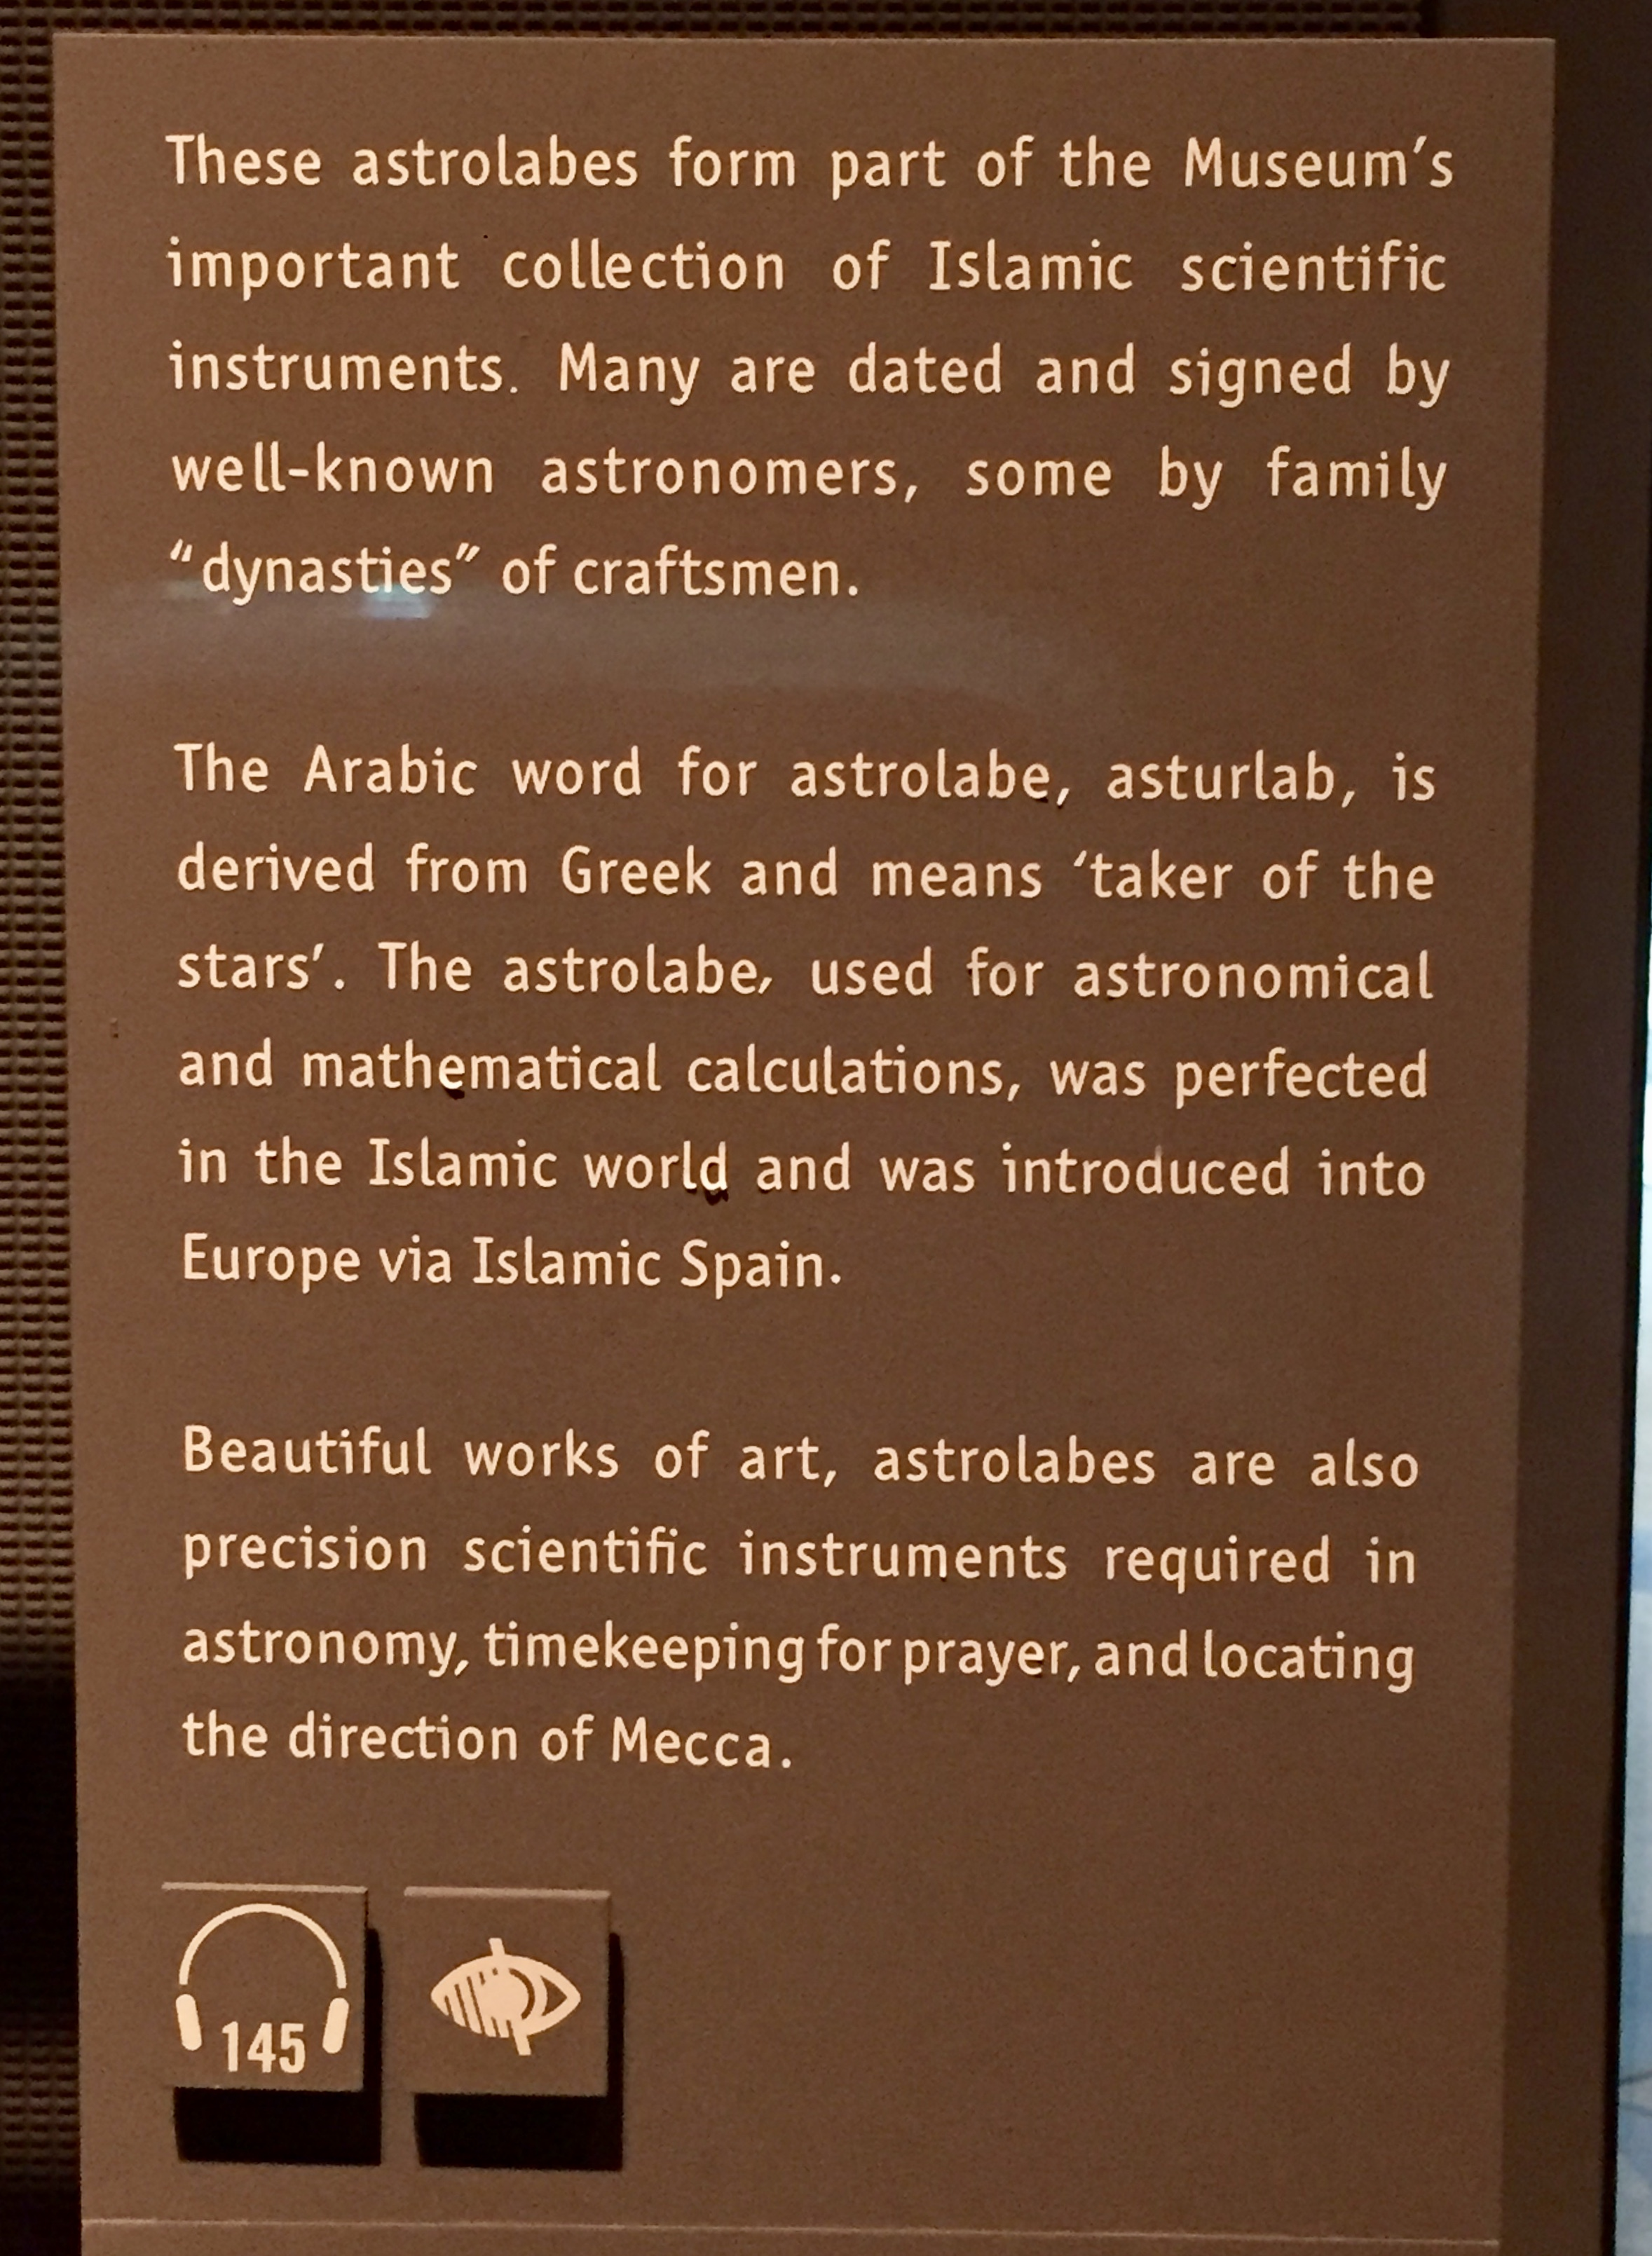 April, 2018 - Doha, Qatar - Museum of Islamic Art - Science in Art - Astrolabes - Signage